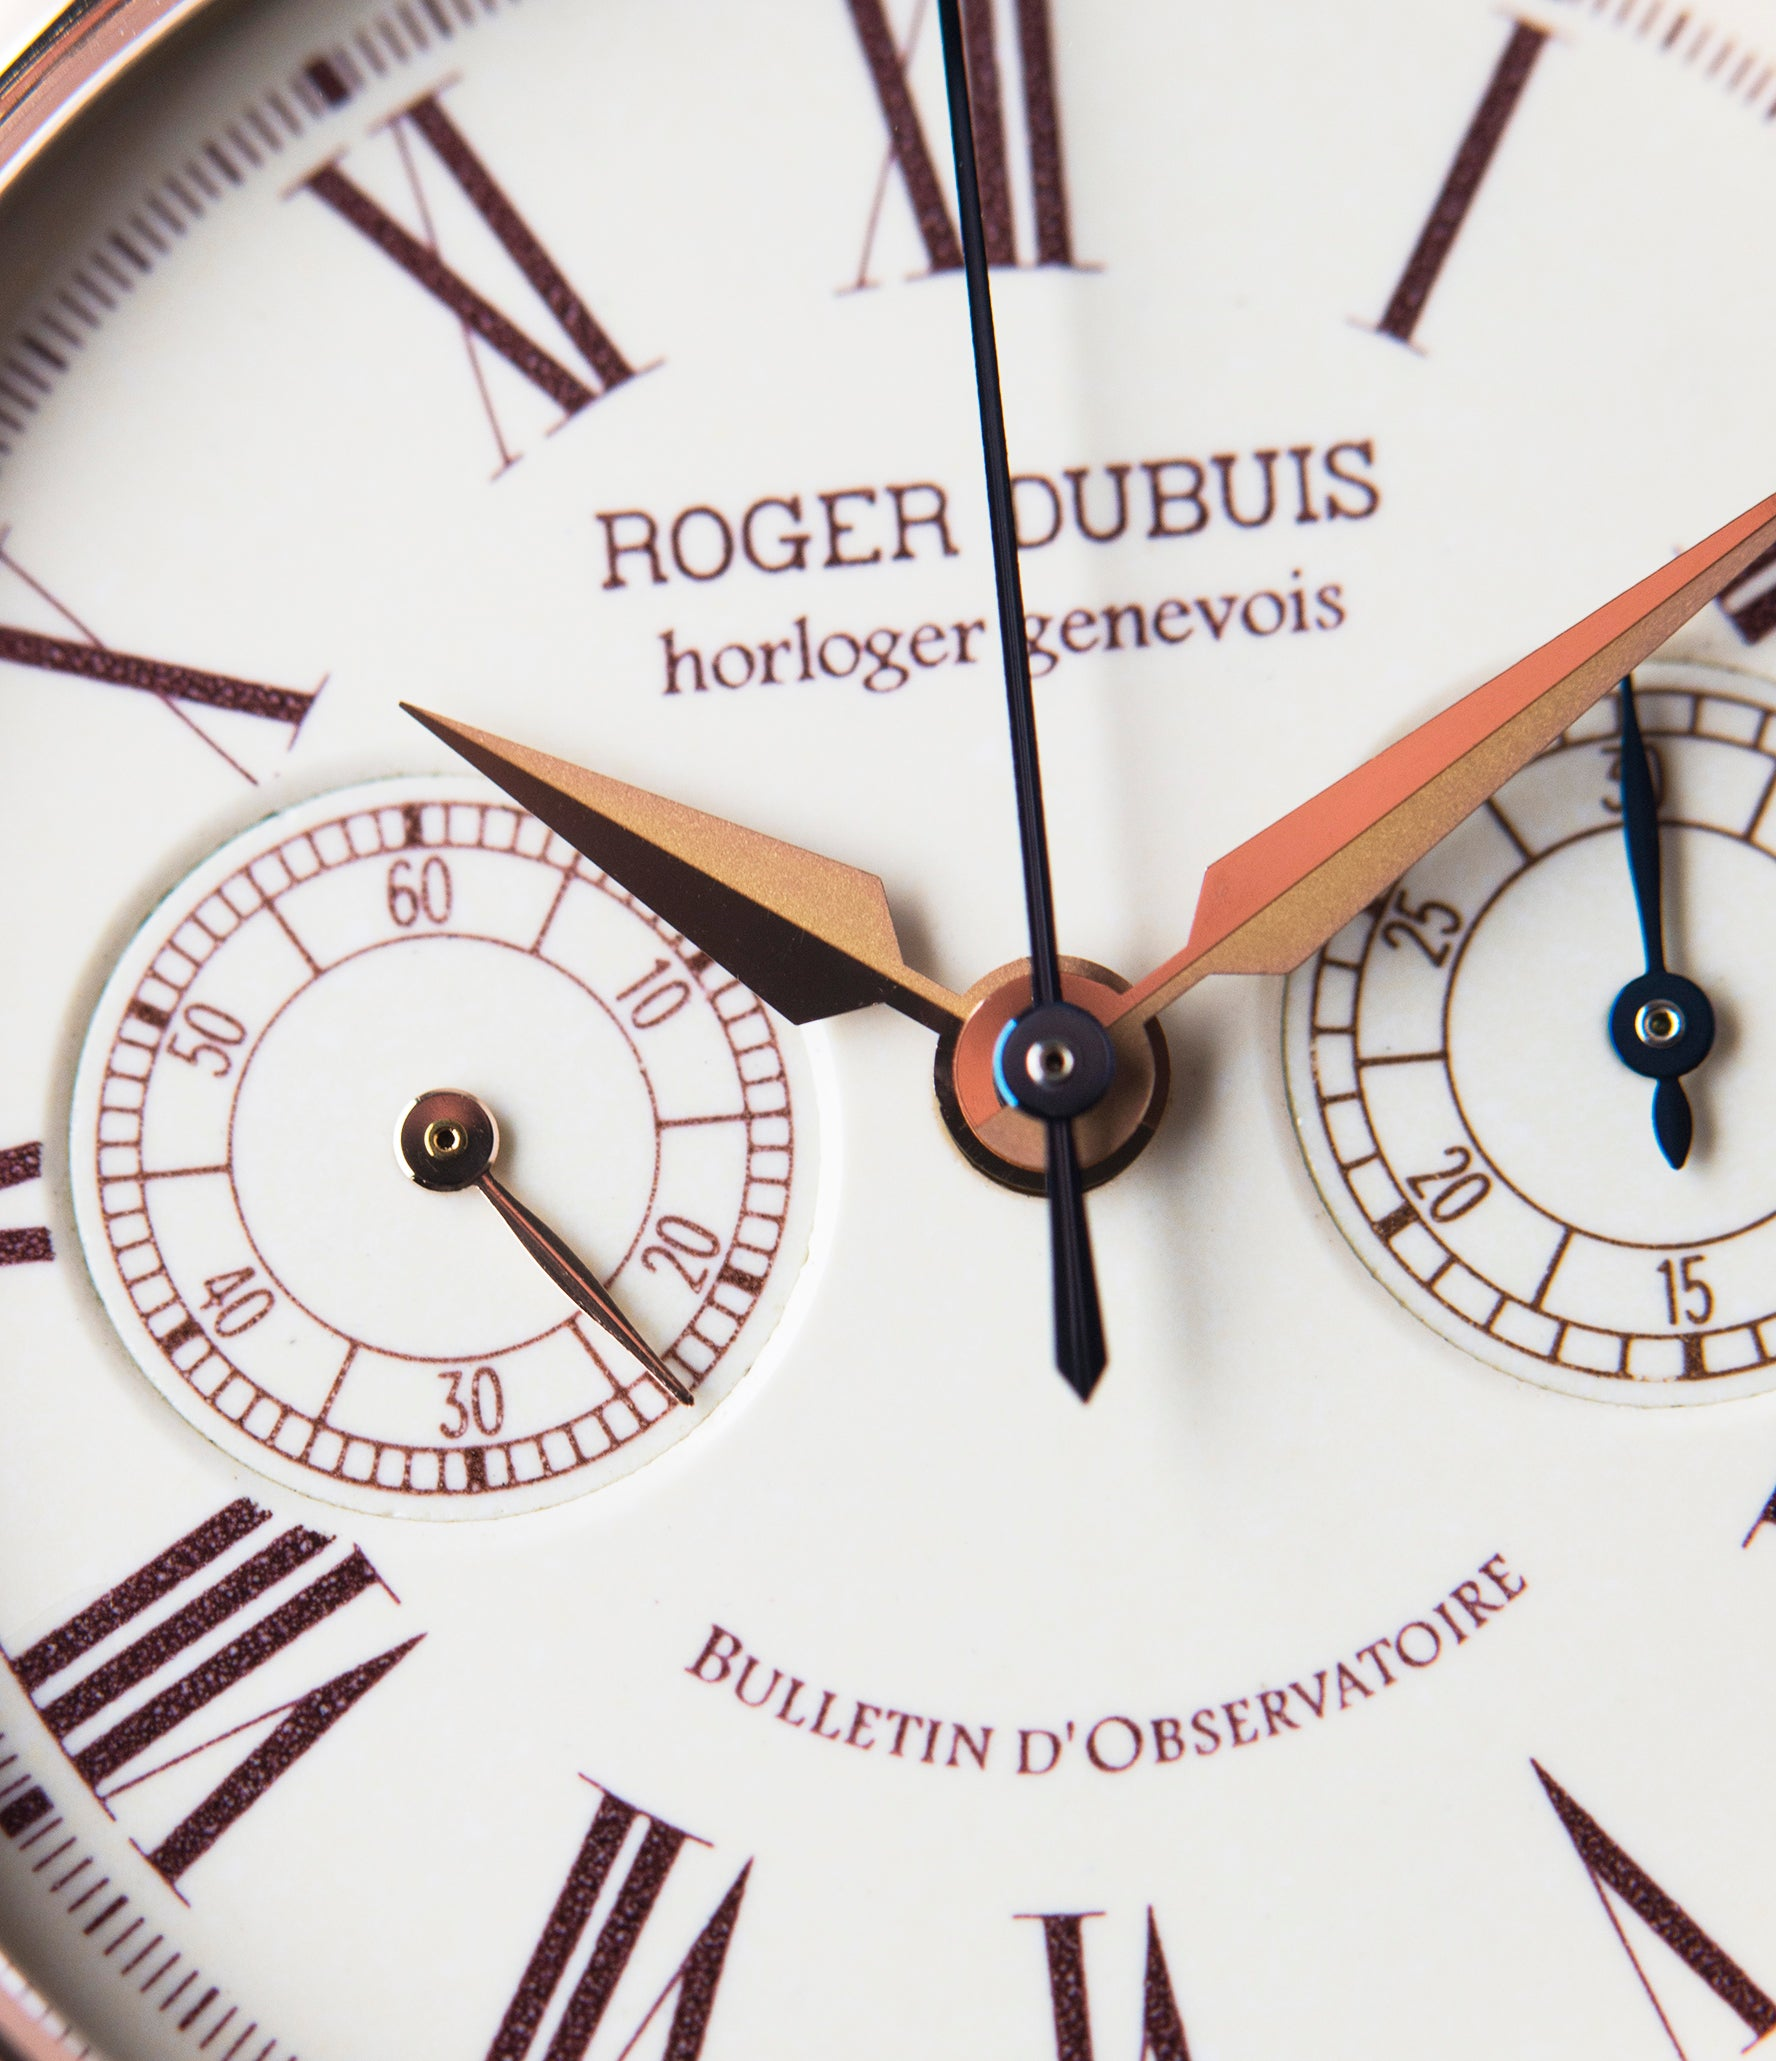 white enamel dial Roger Dubuis Hommage Chronograph H37 565 rose gold pre-owned watch online at A Collected Man London UK specialist rare watches